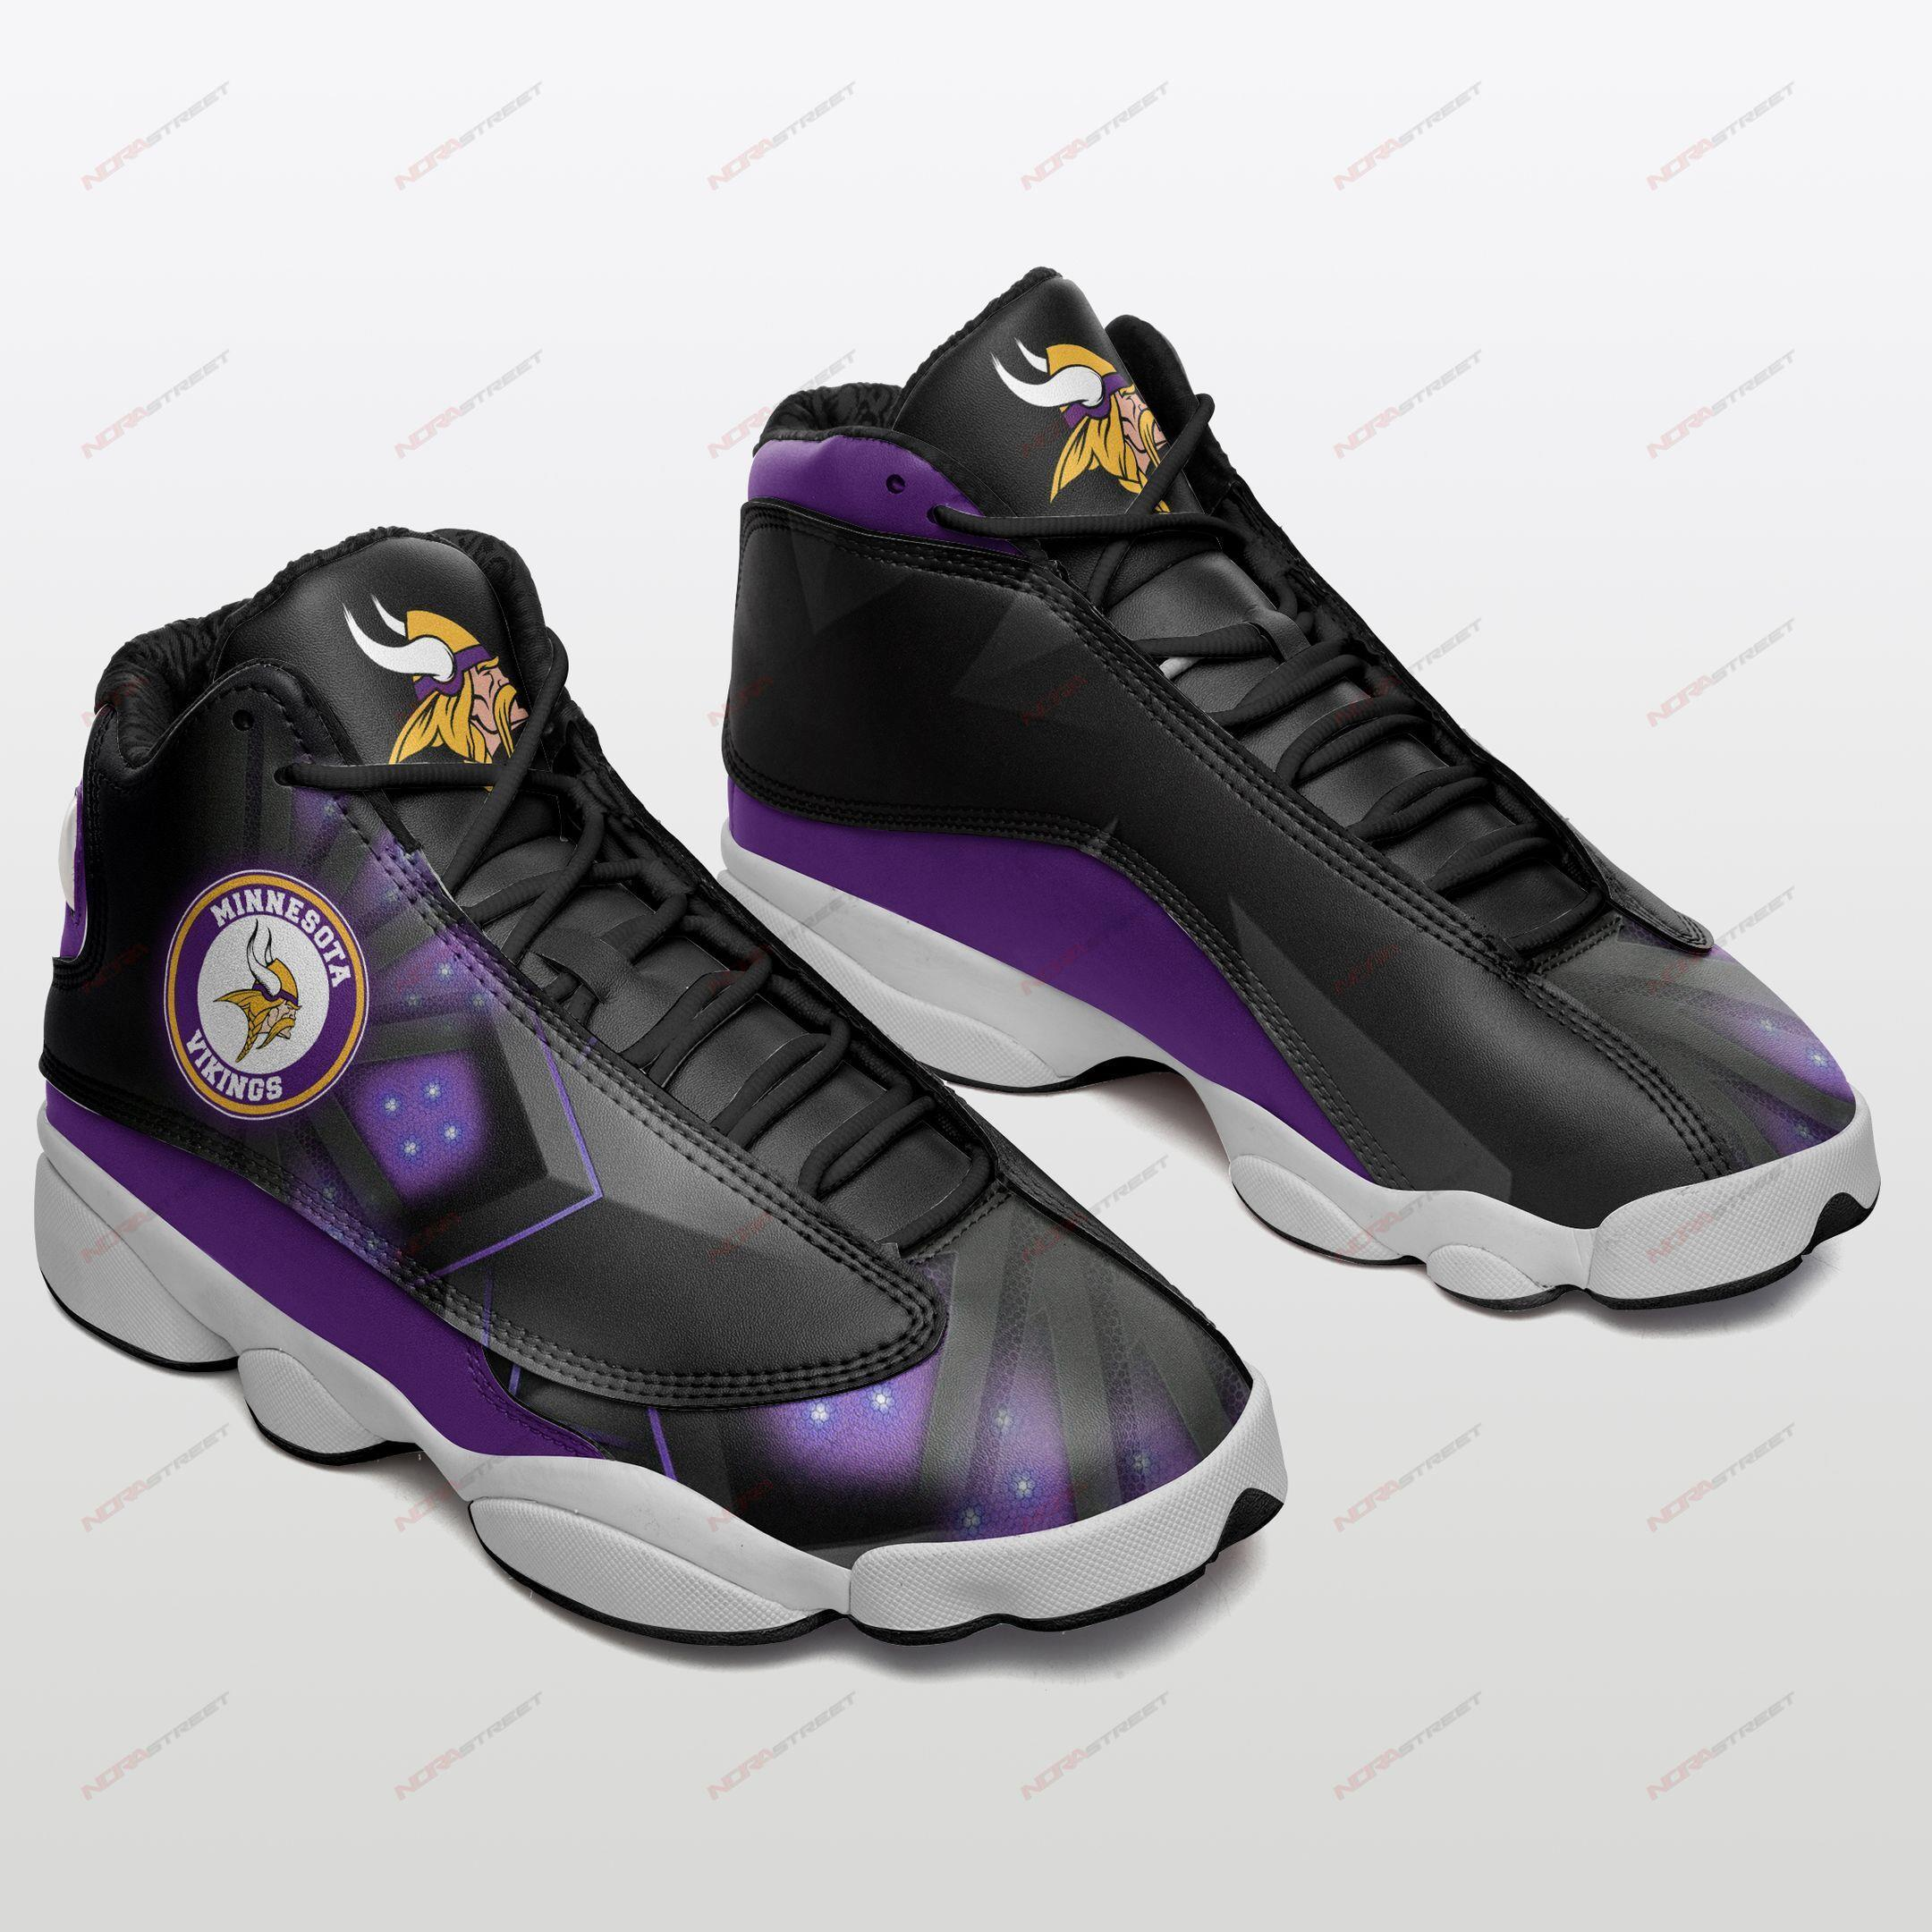 Minnesota Vikings Air Jordan 13 Sneakers Sport Shoes Full Size